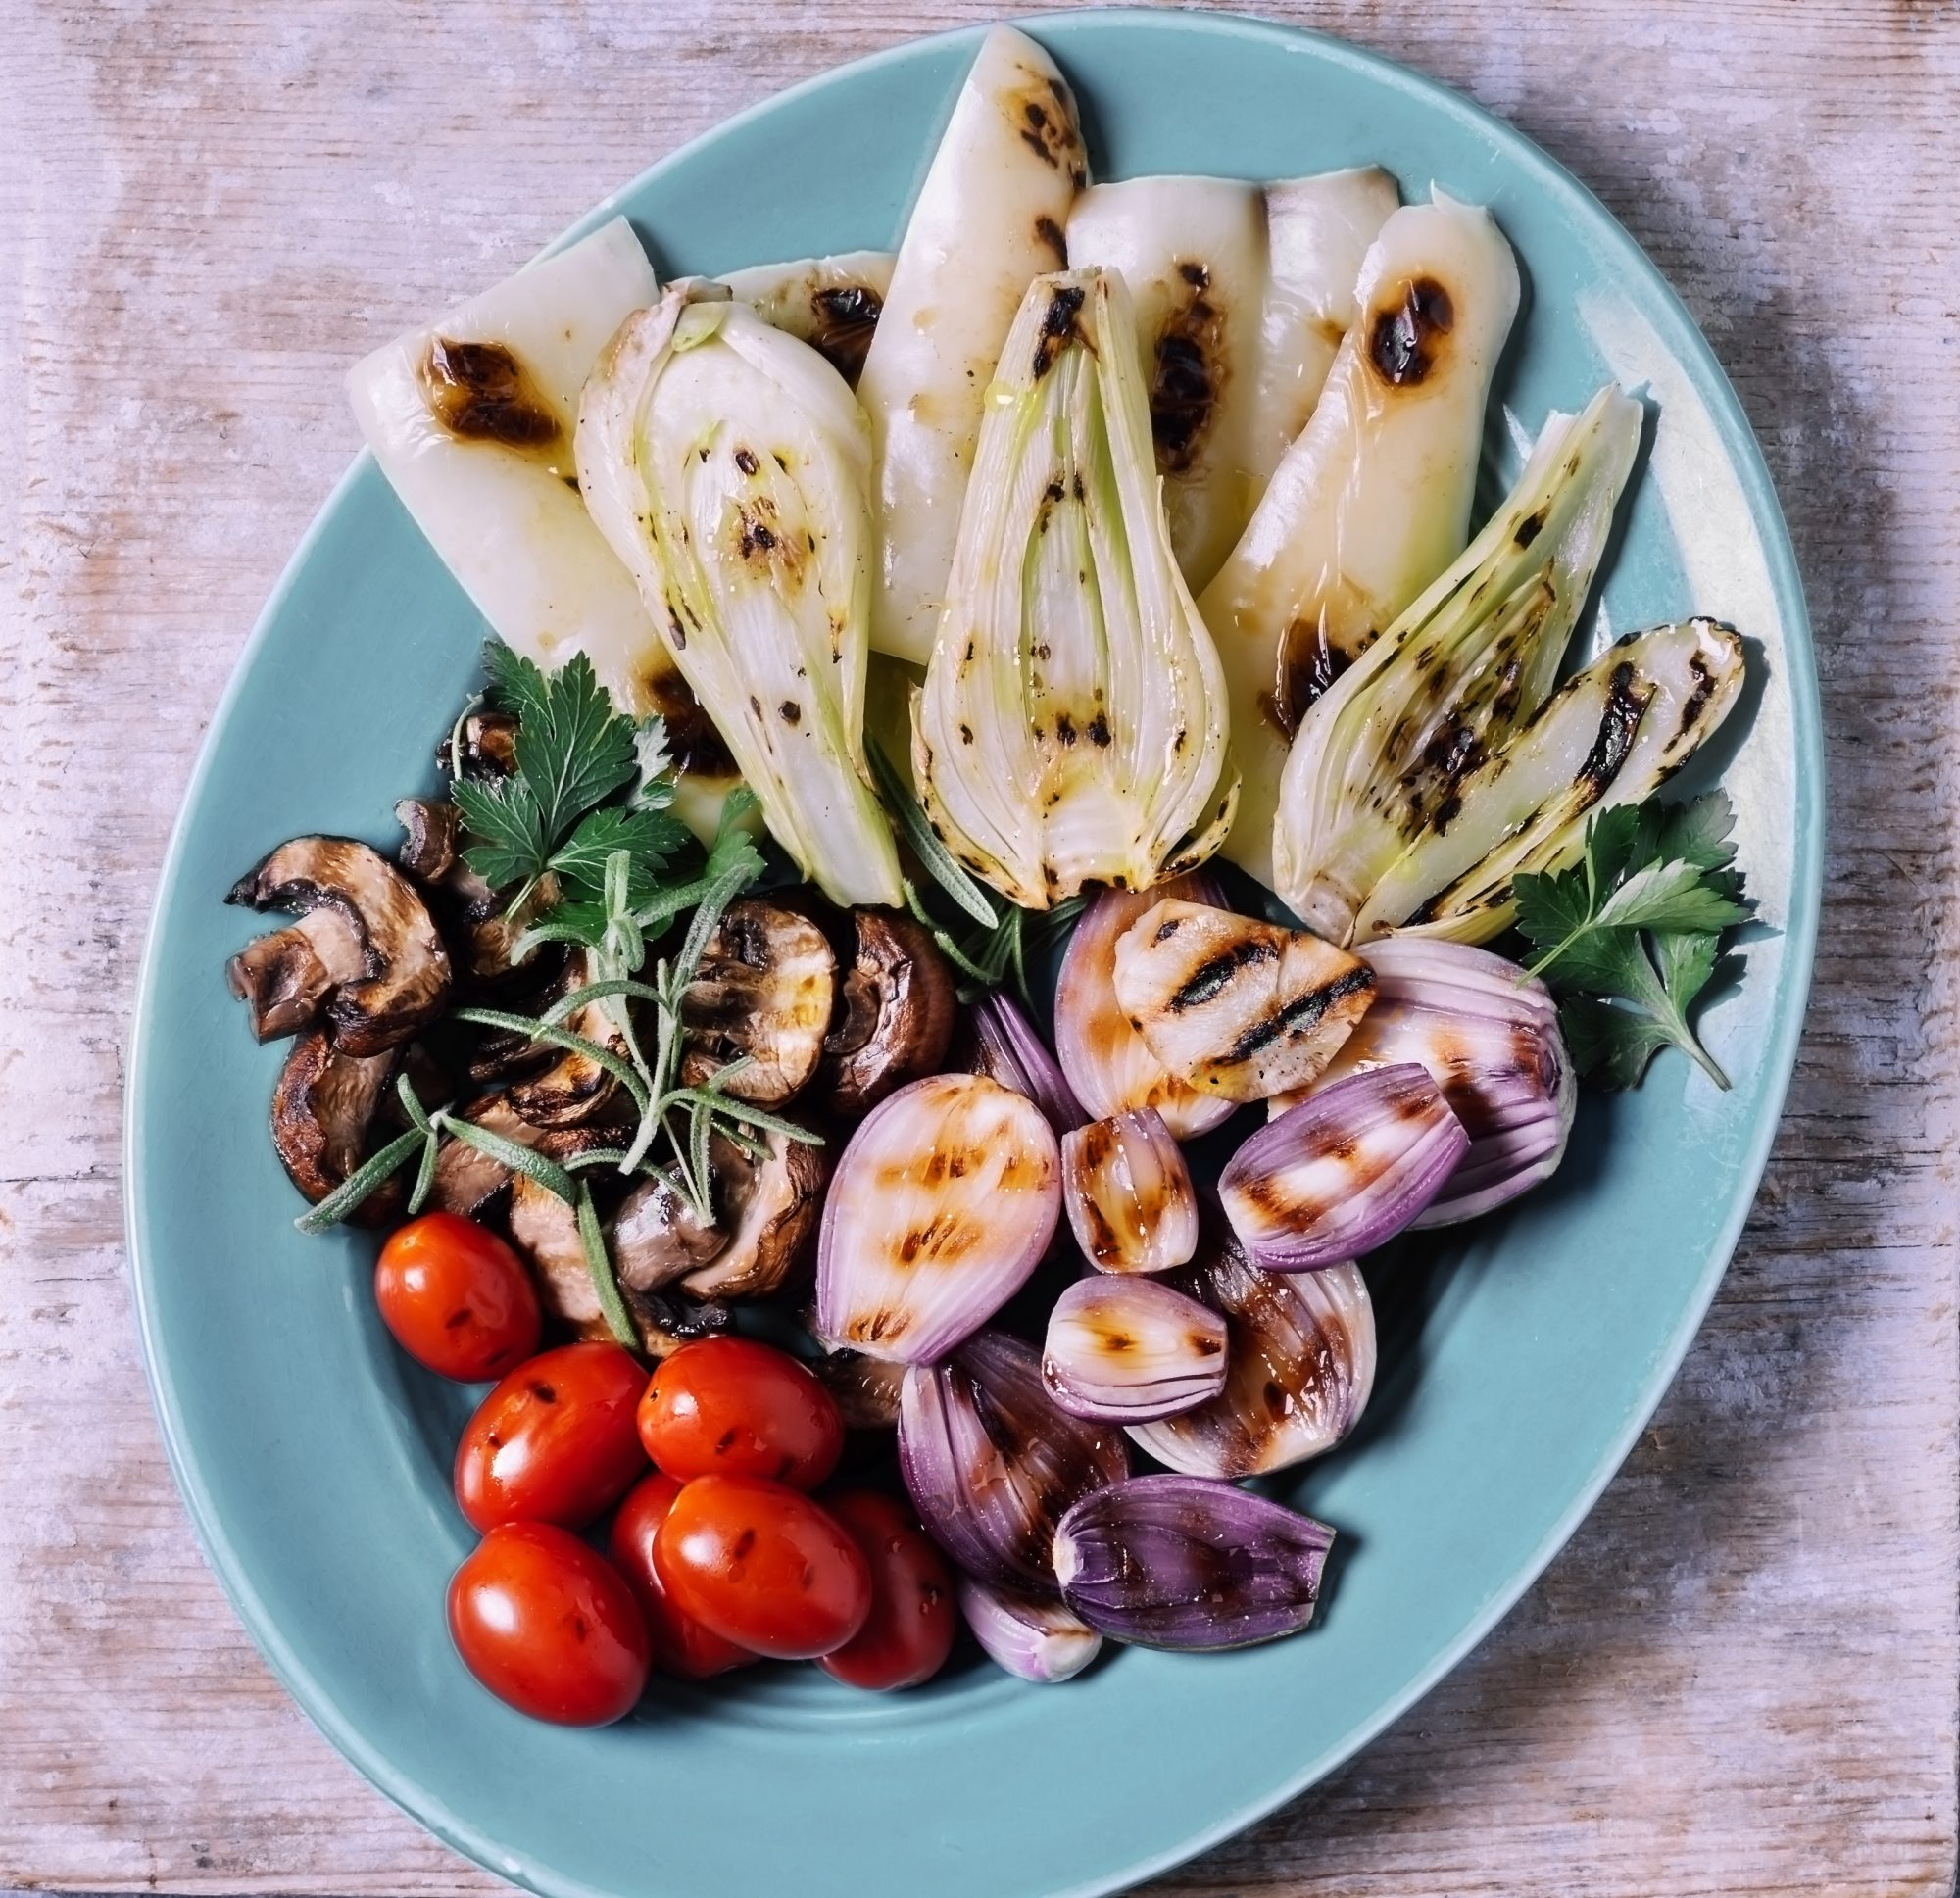 plate with healthy cooked vegetables